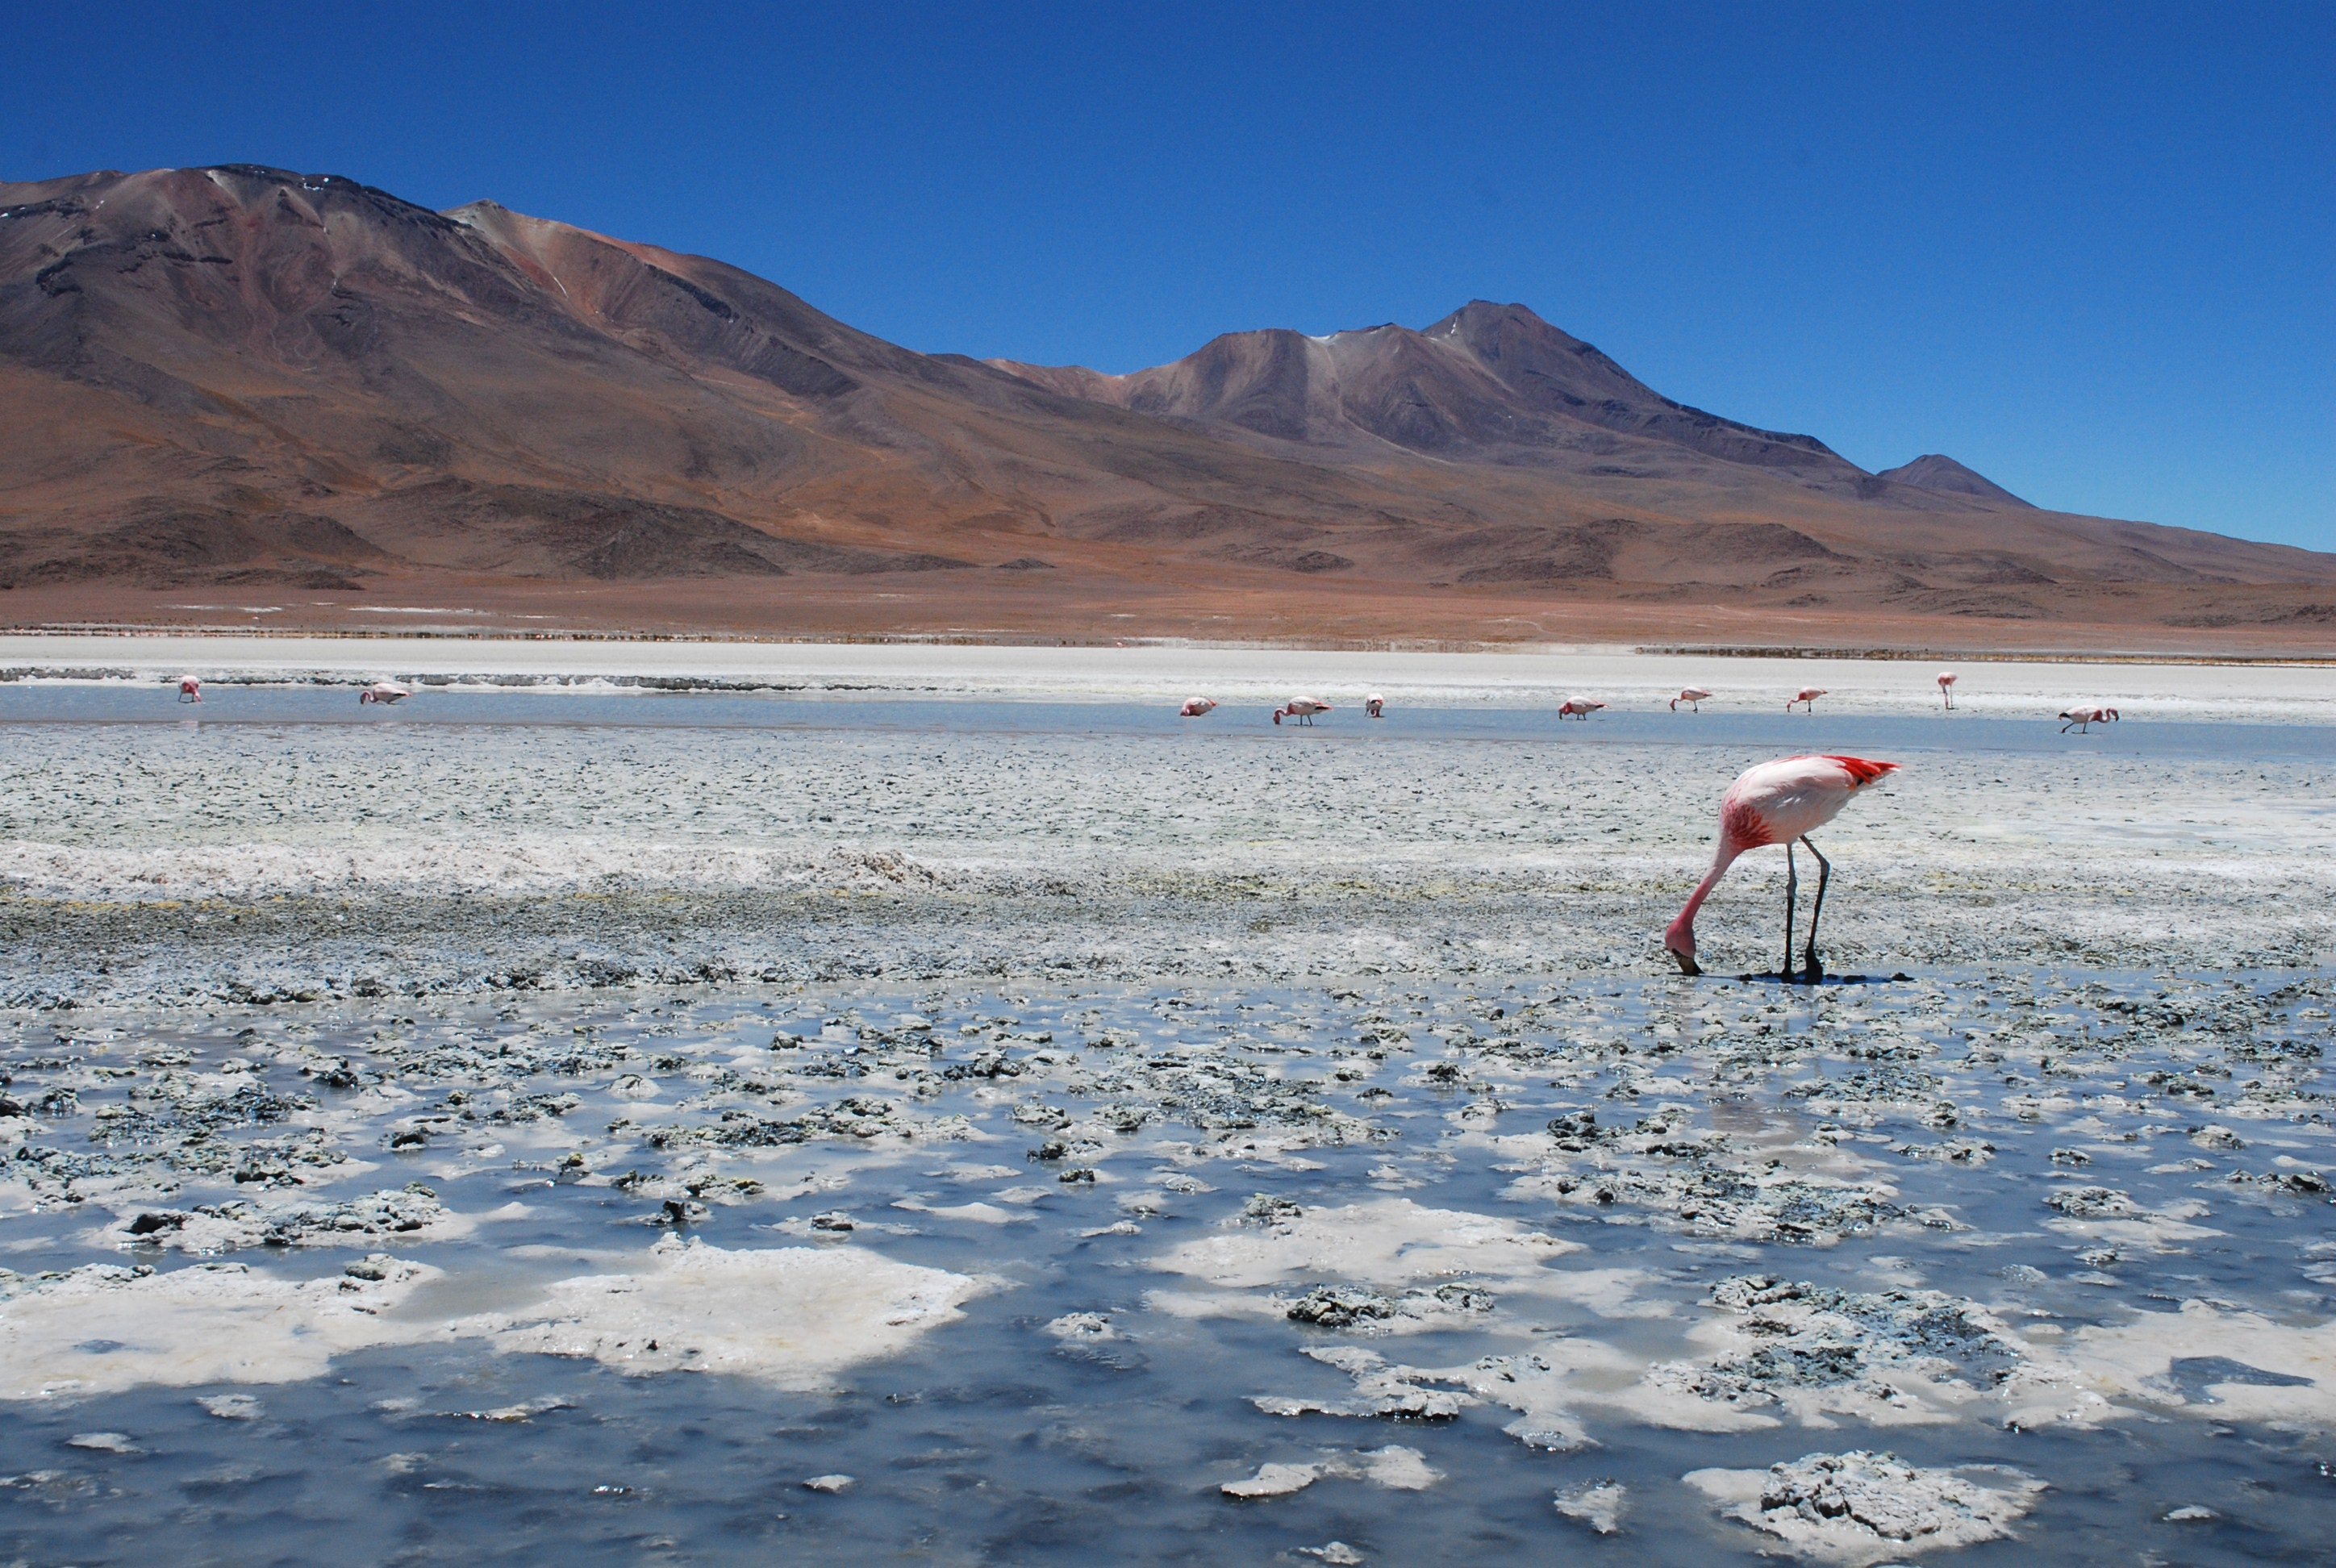 uyuni asian personals Price poised to pounce after super rally stage the 498km competitive section from the uyuni salt flats to tupiza was matildas confirm pre-asian cup.